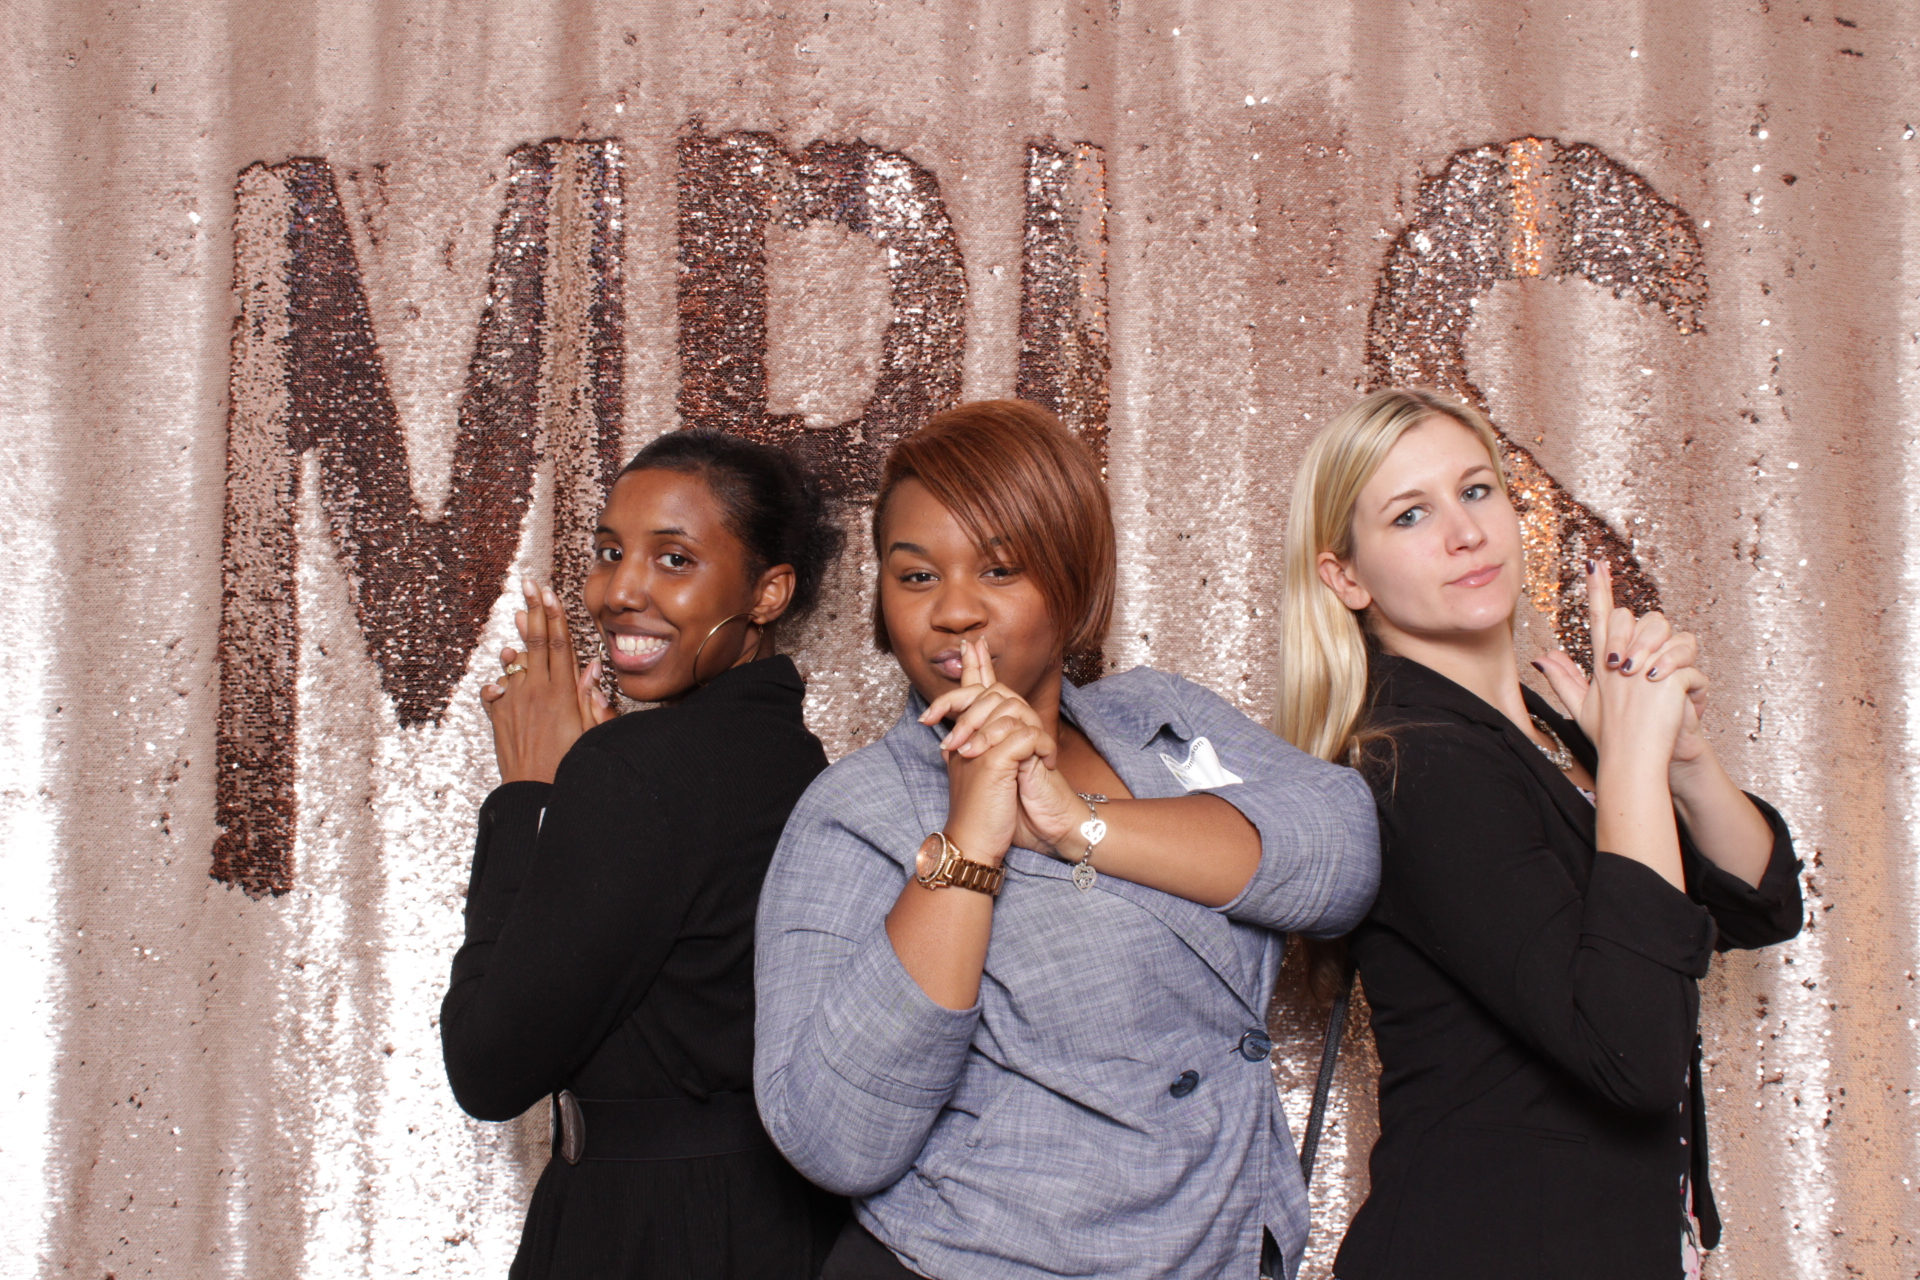 Minneapolis_corporate_photo_booth_rentals (8).jpg